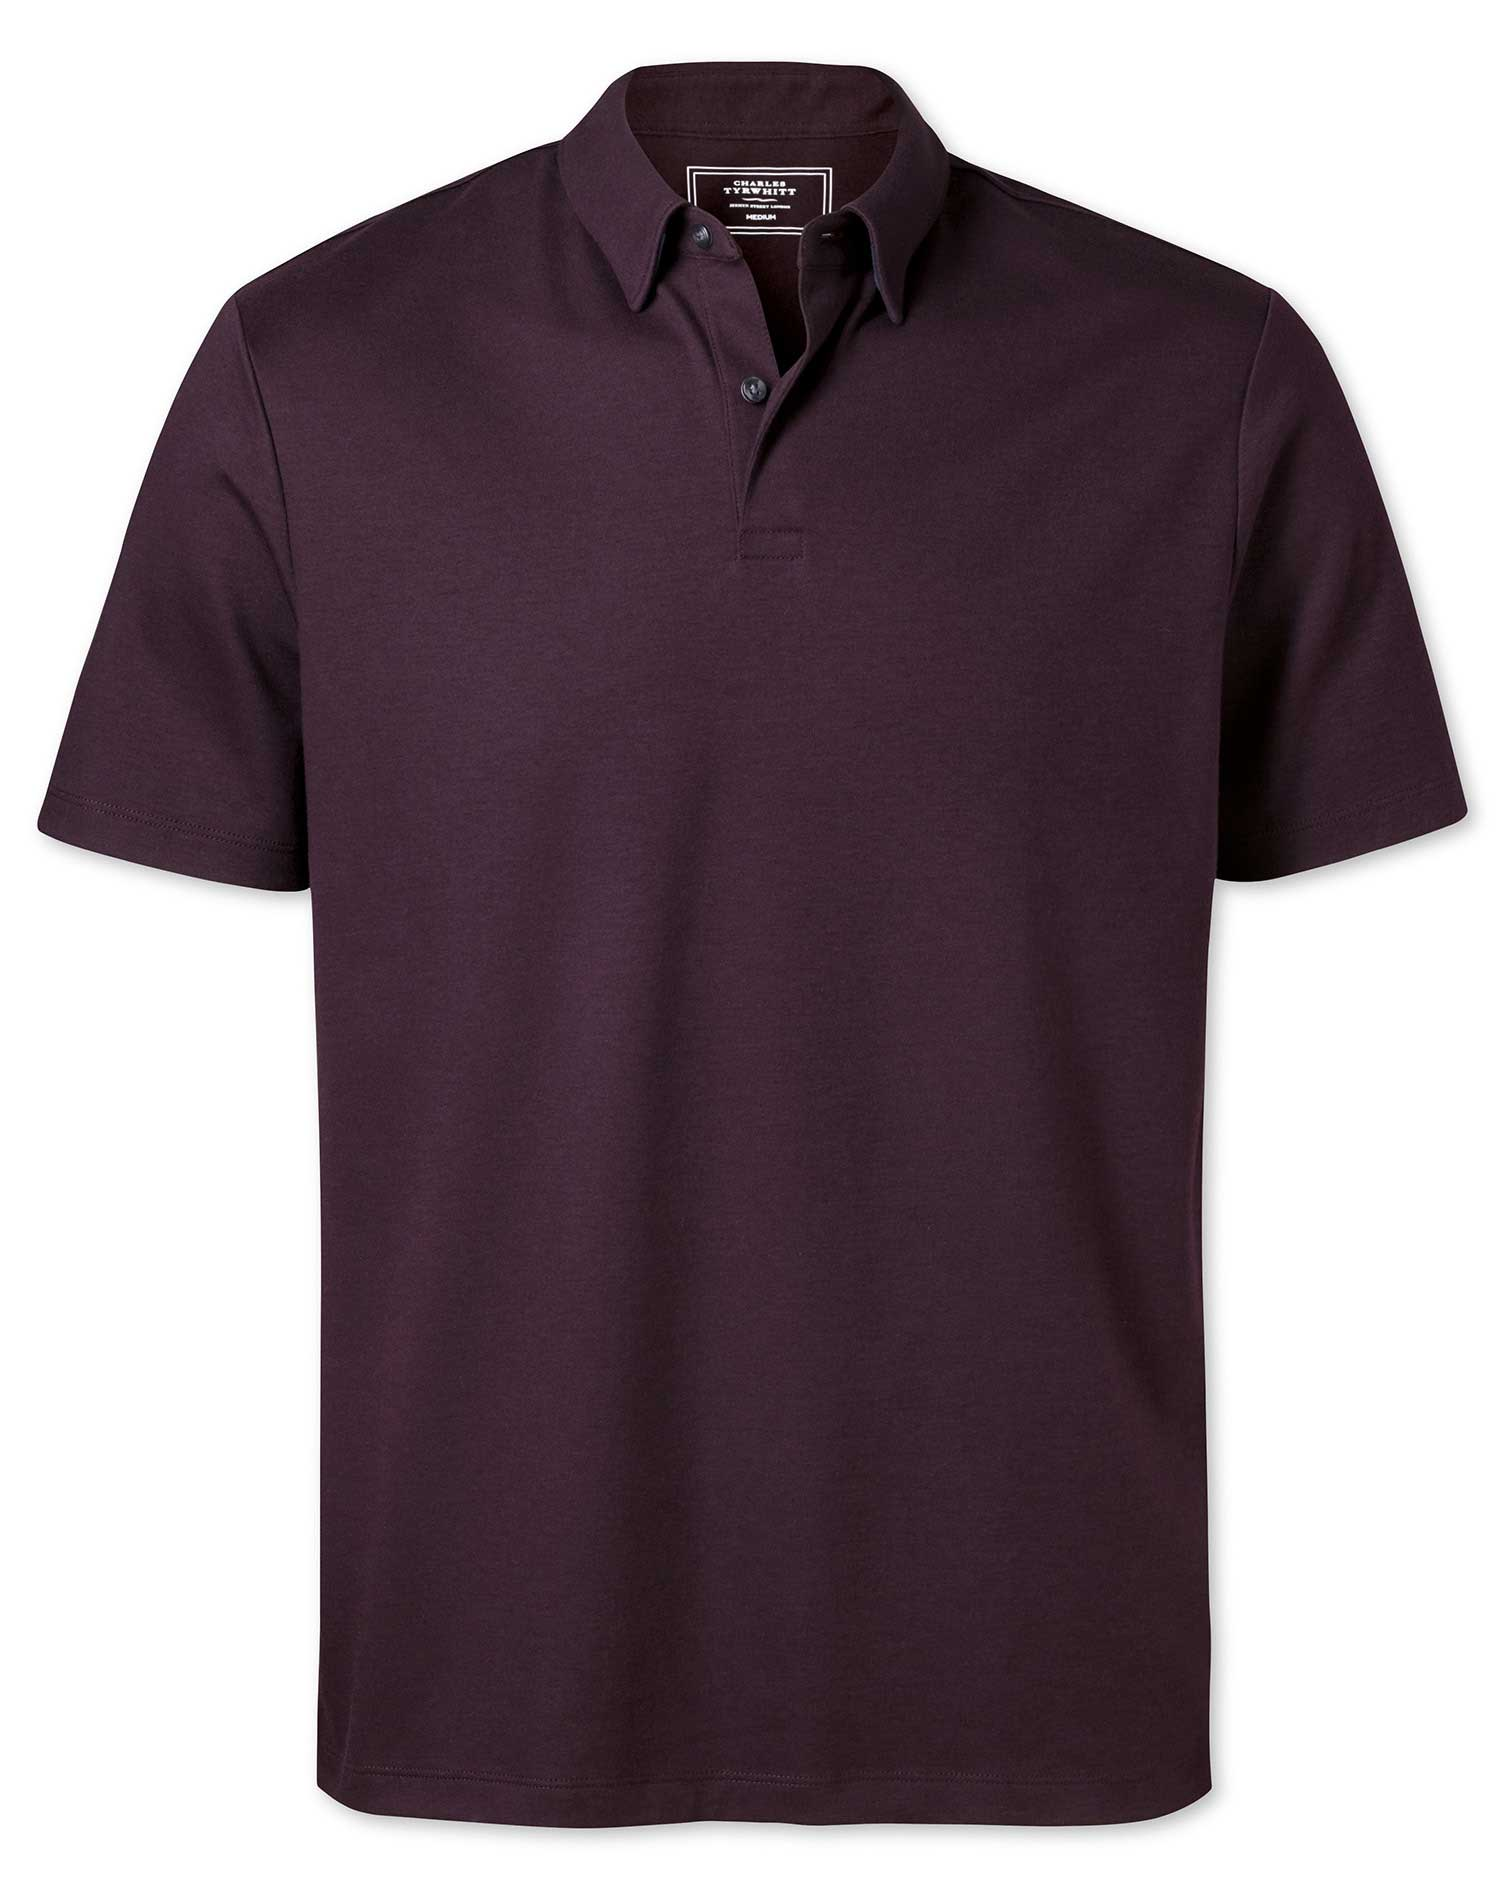 Plain Burgundy Jersey Cotton Polo Size Large by Charles Tyrwhitt